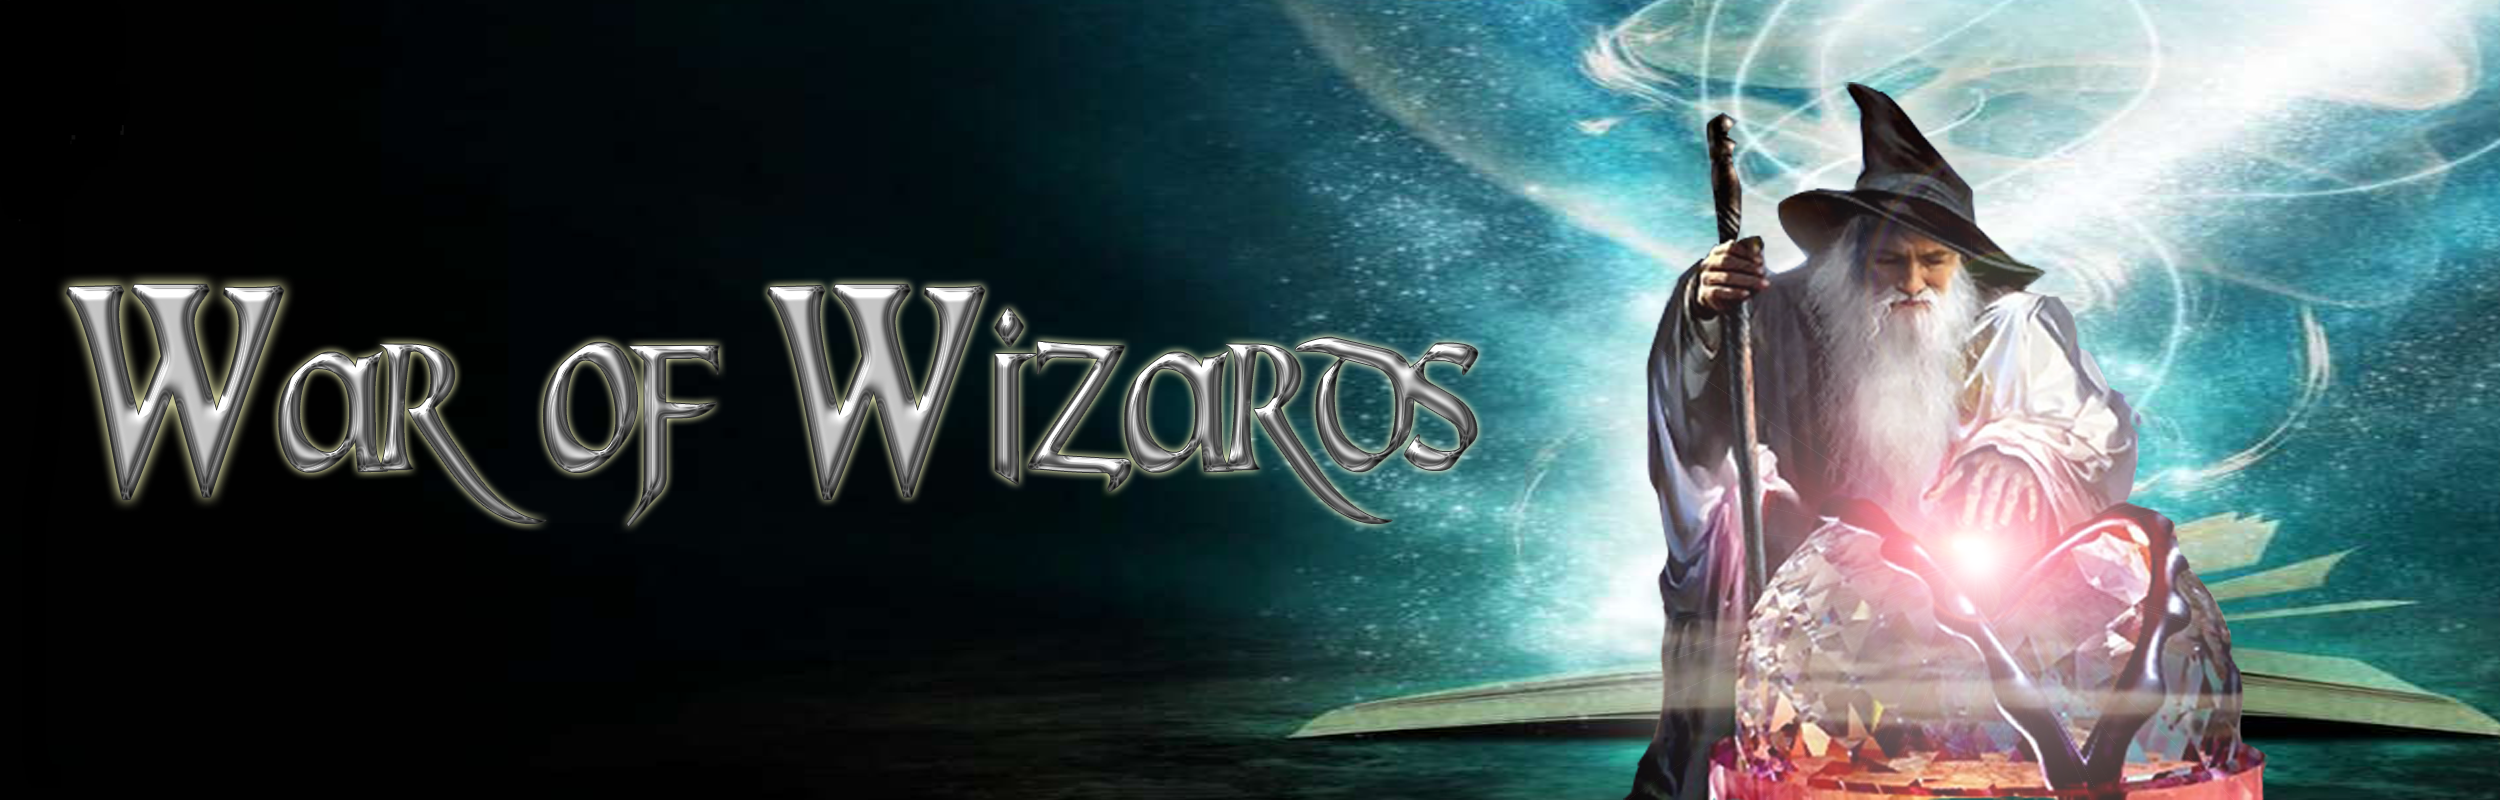 Banner Ad Design by Lara Puno - Entry No. 33 in the Banner Ad Design Contest Banner Ad Design - War of Wizards (fantasy game).